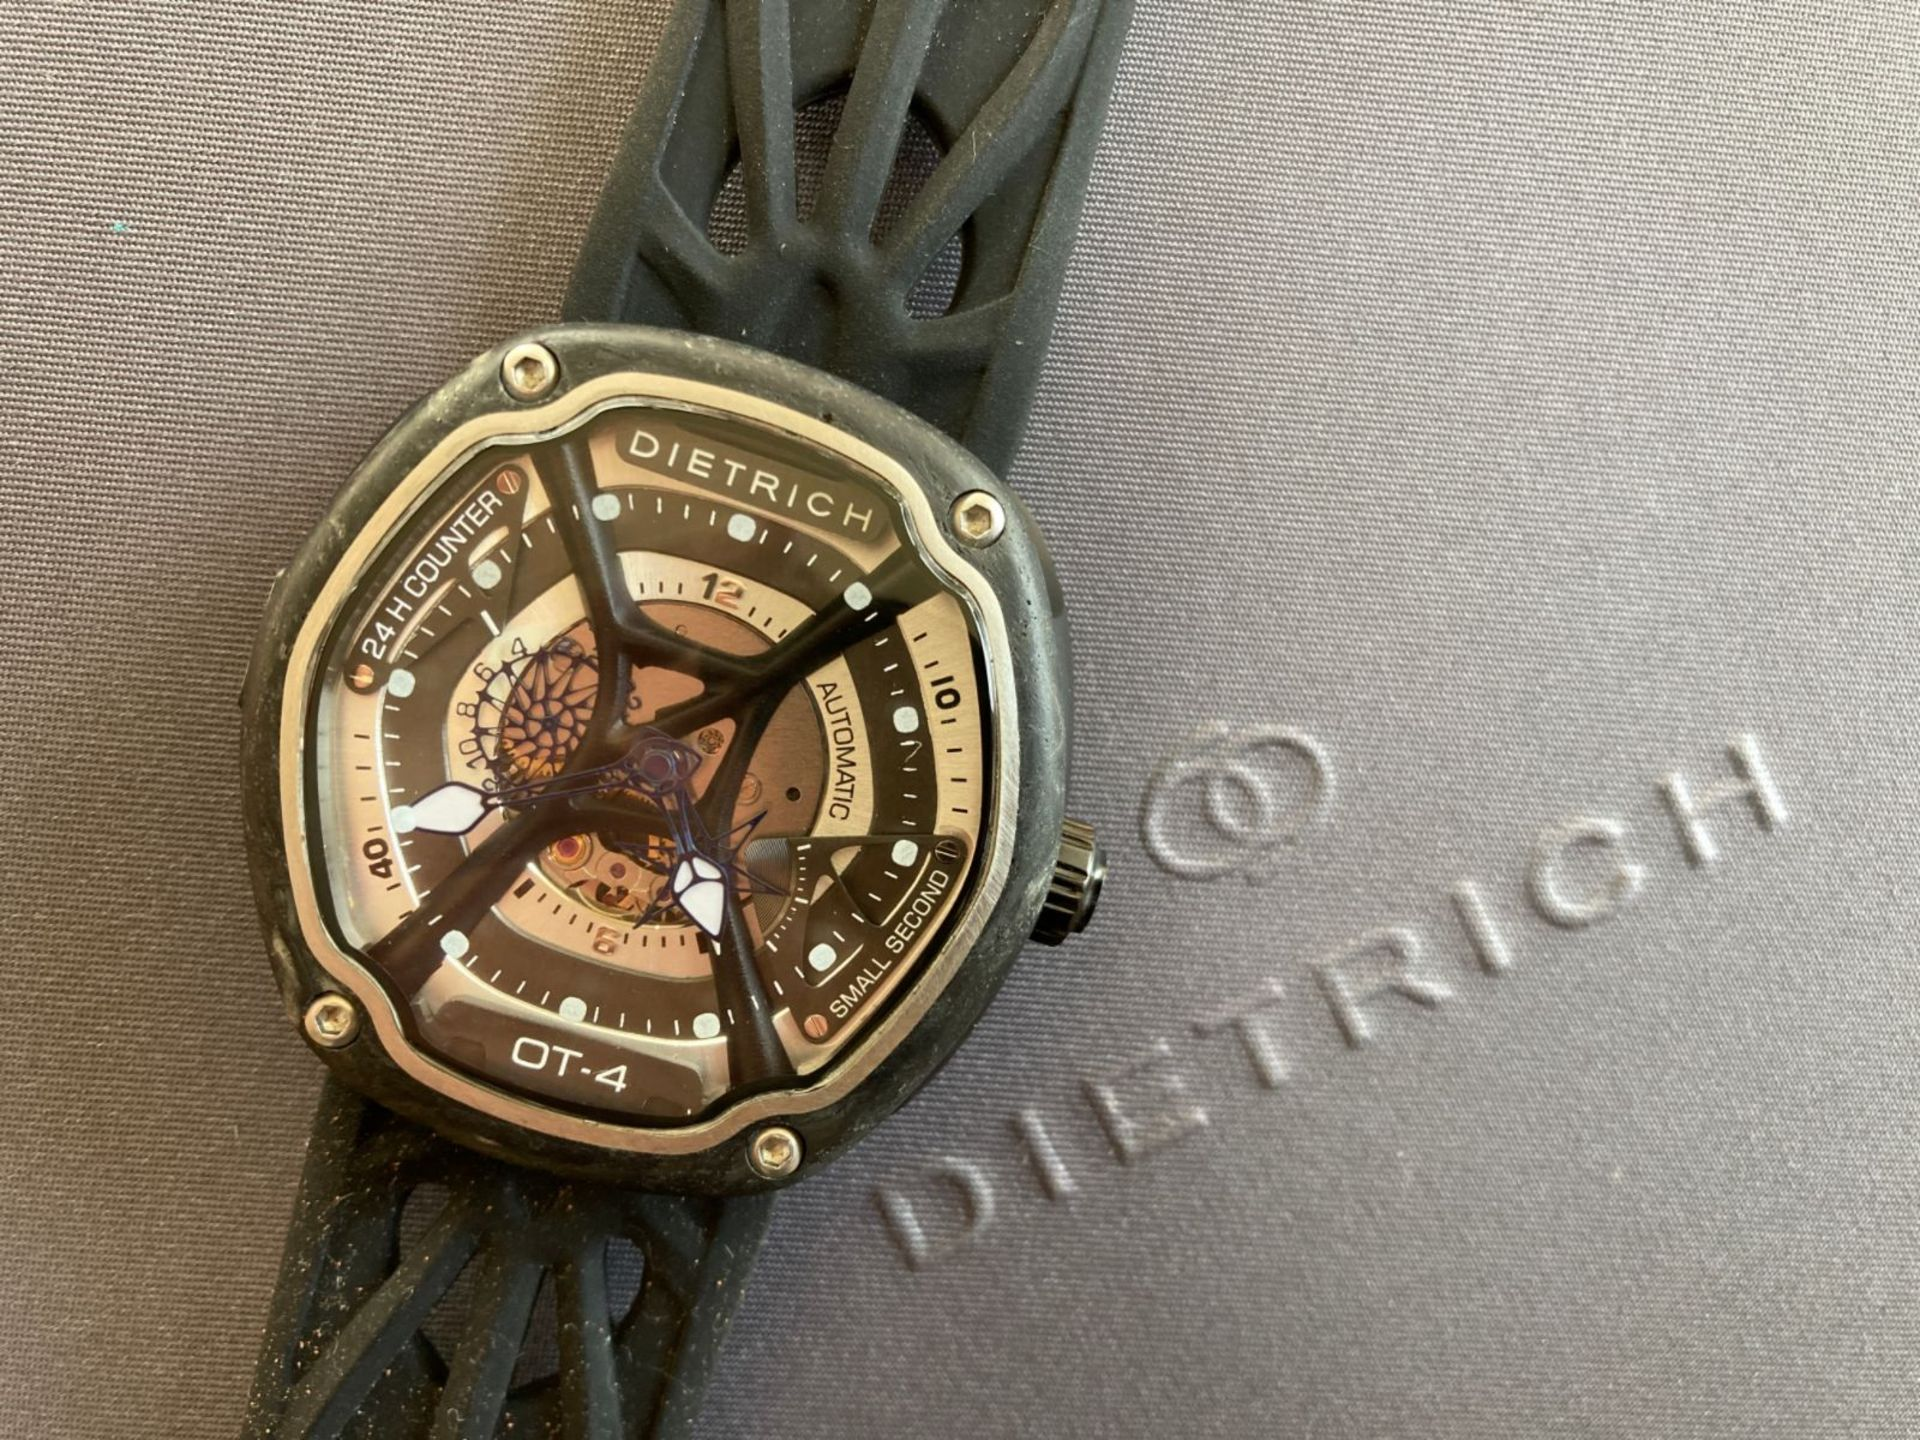 DIETRICH WATCH - BOXED WITH ORIGINAL EXTRAS